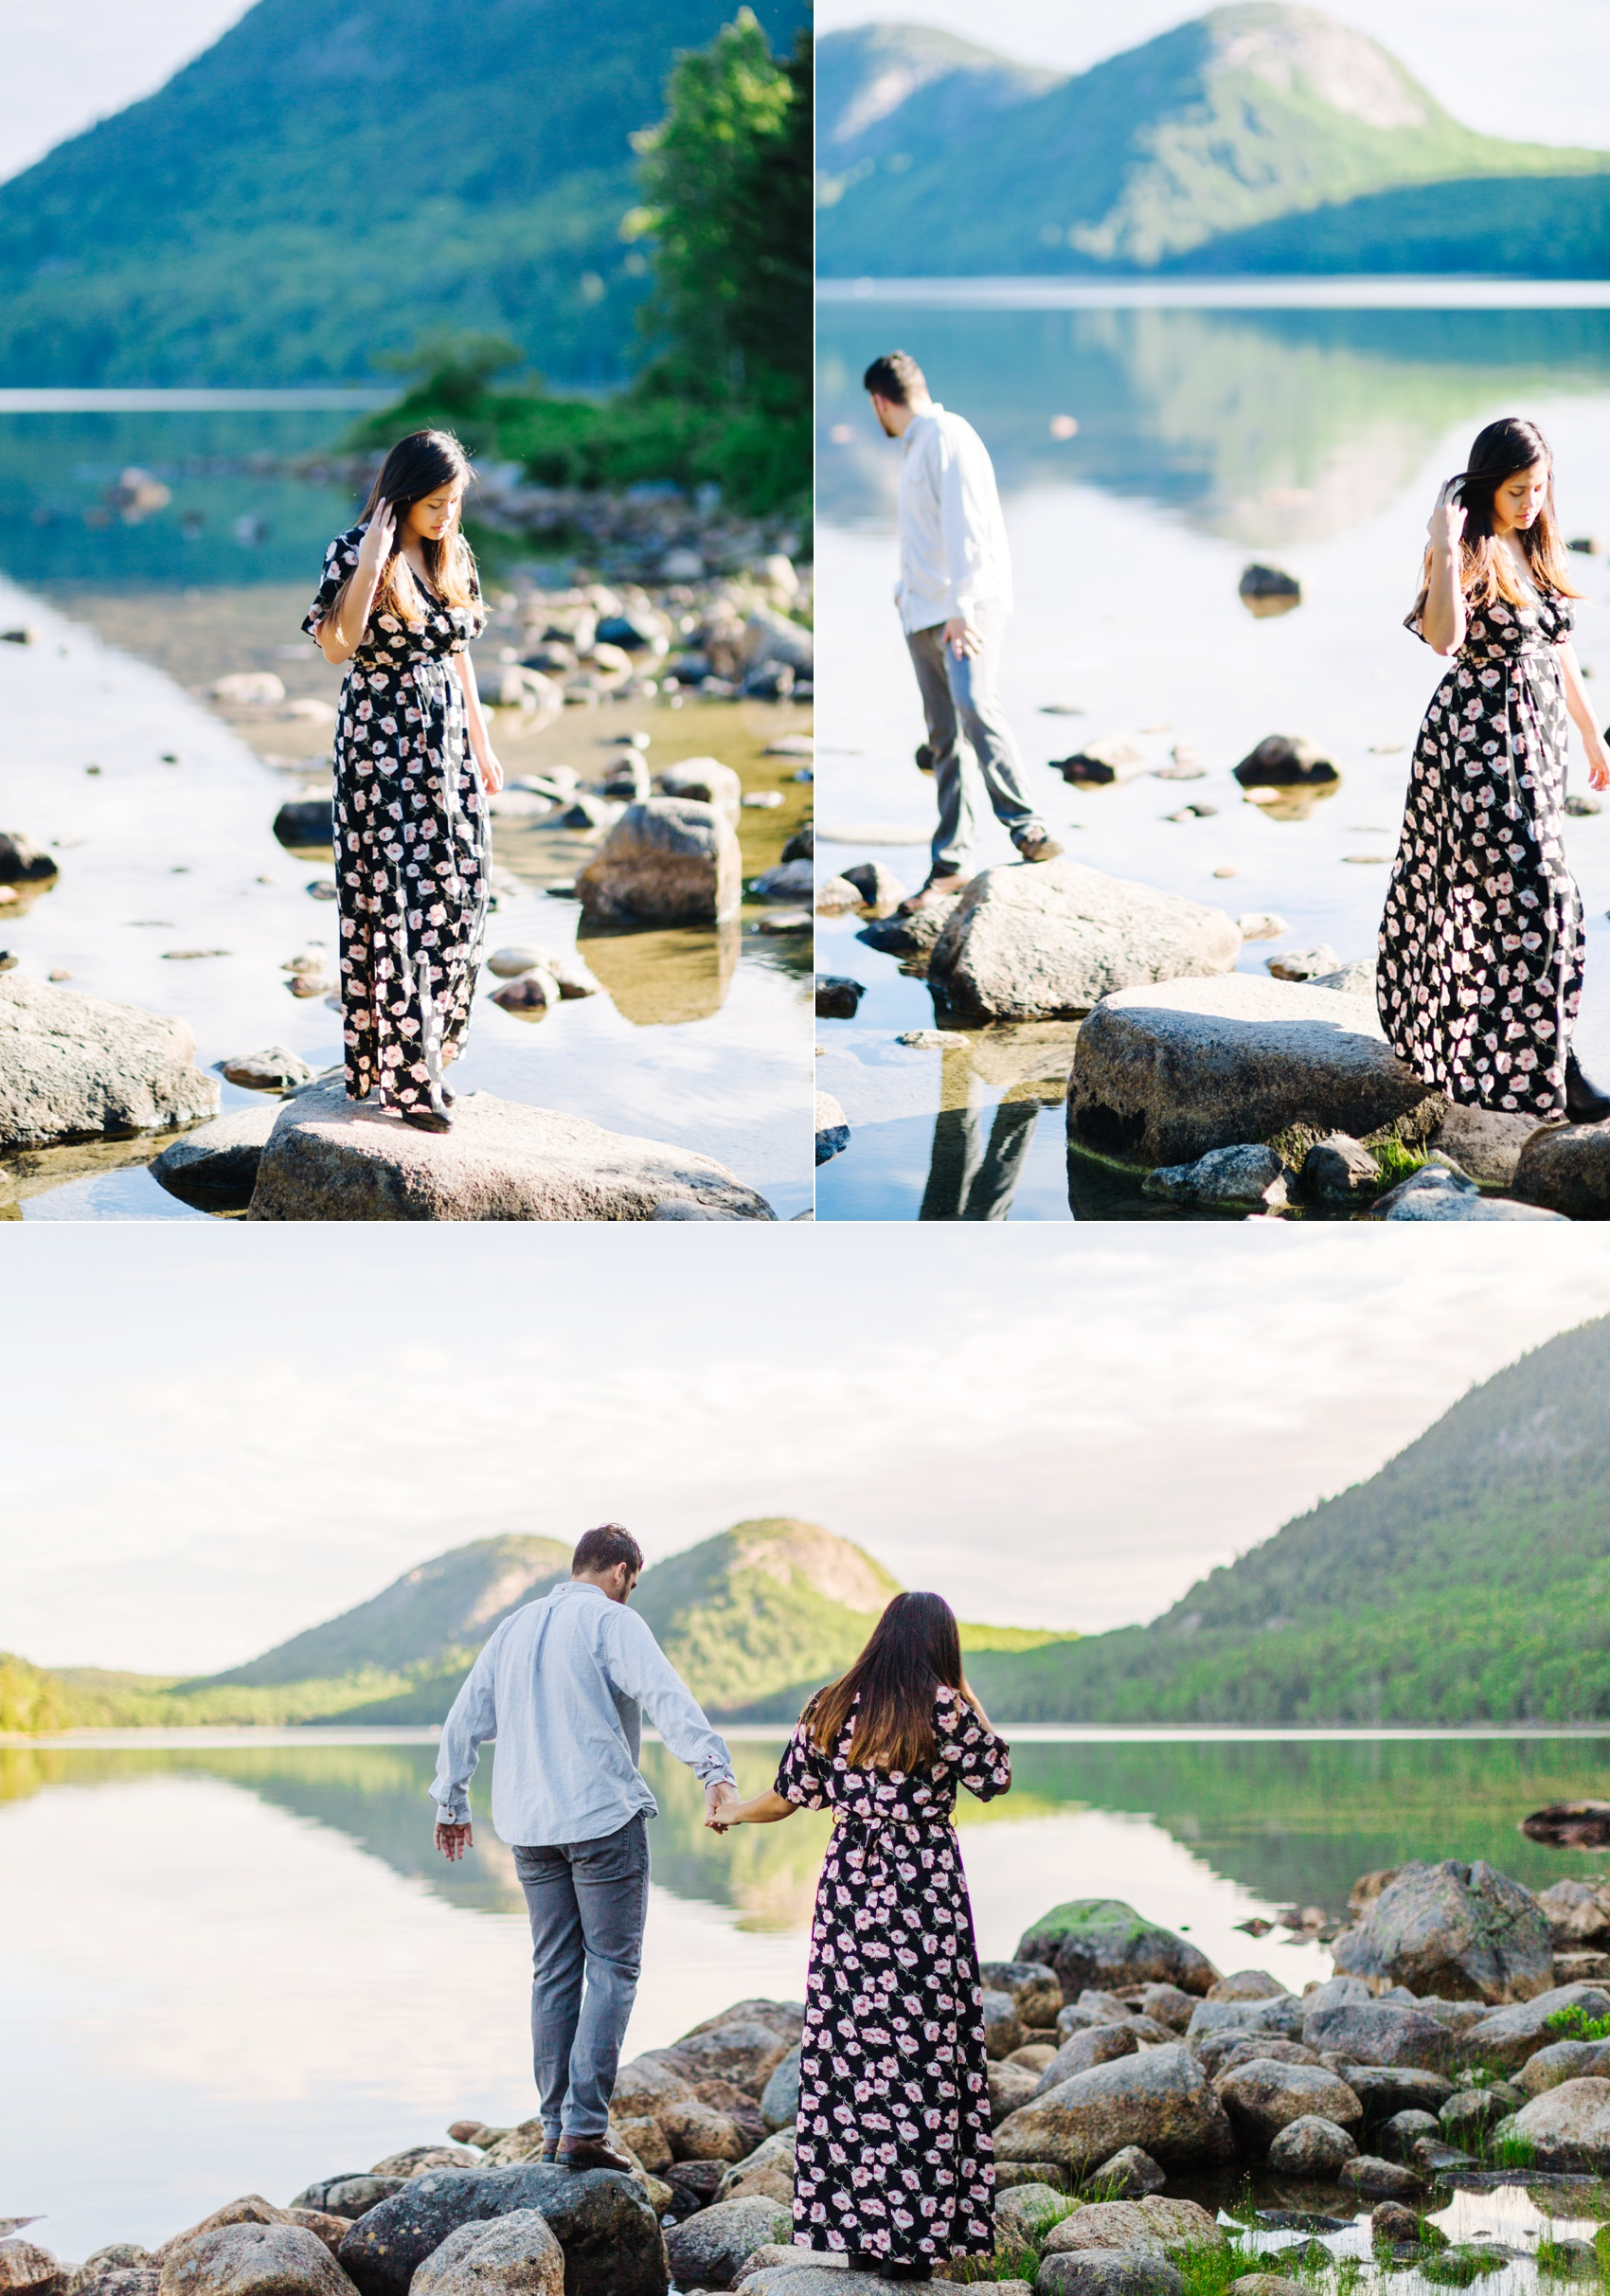 jake and jill acacdia national park engagement session cadillac mountain engagement session jordan pond engagement session maine engagement session jake and katie_0027